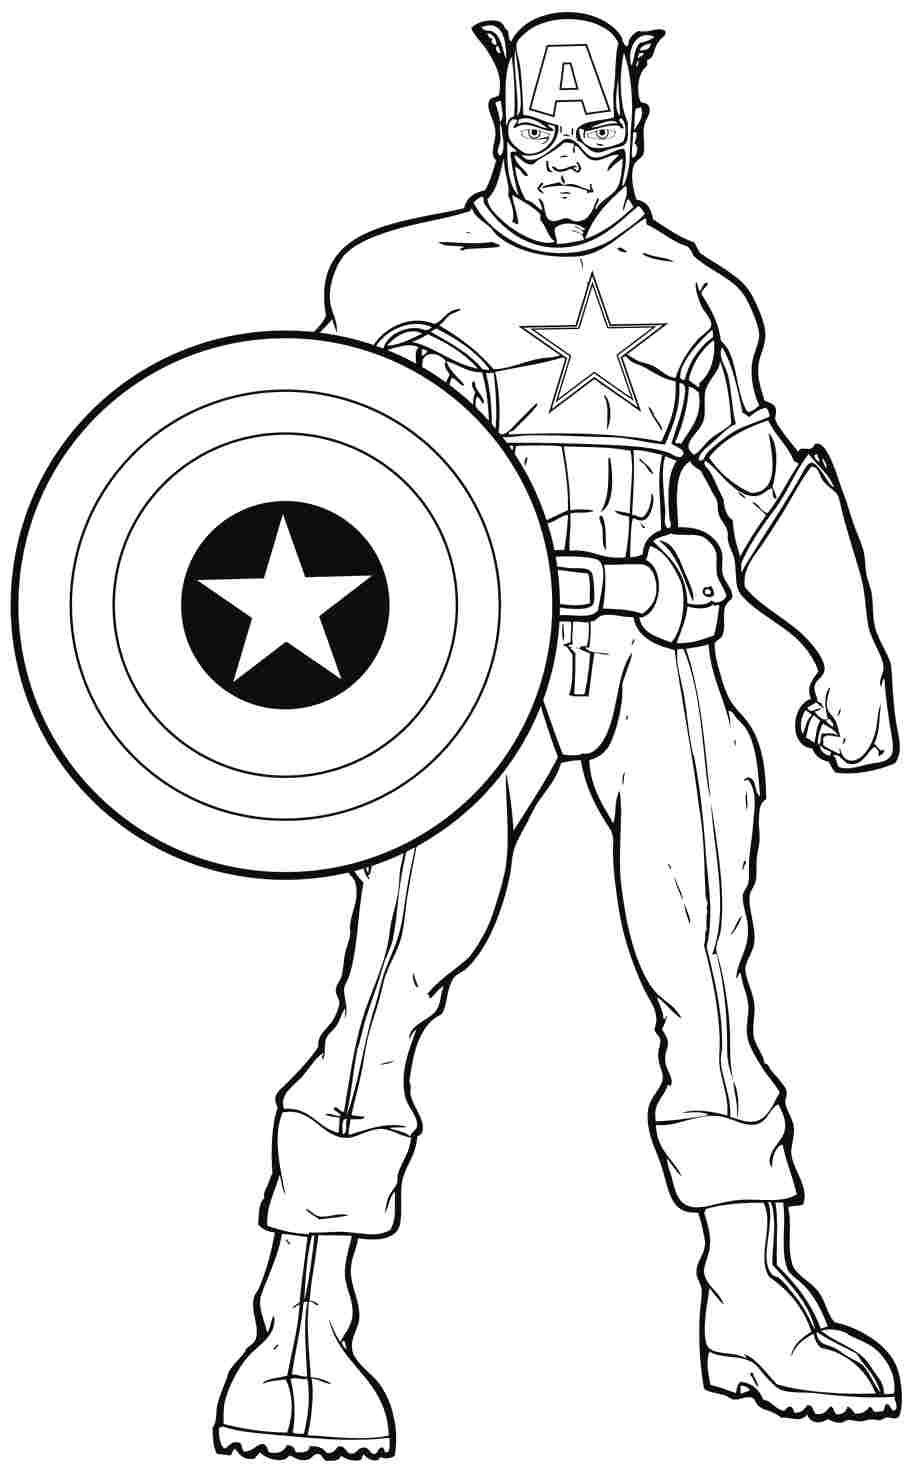 Coloring Pages Ideas: Freeintable Superhero Coloring Pages Marvel - Free Printable Superhero Coloring Pages